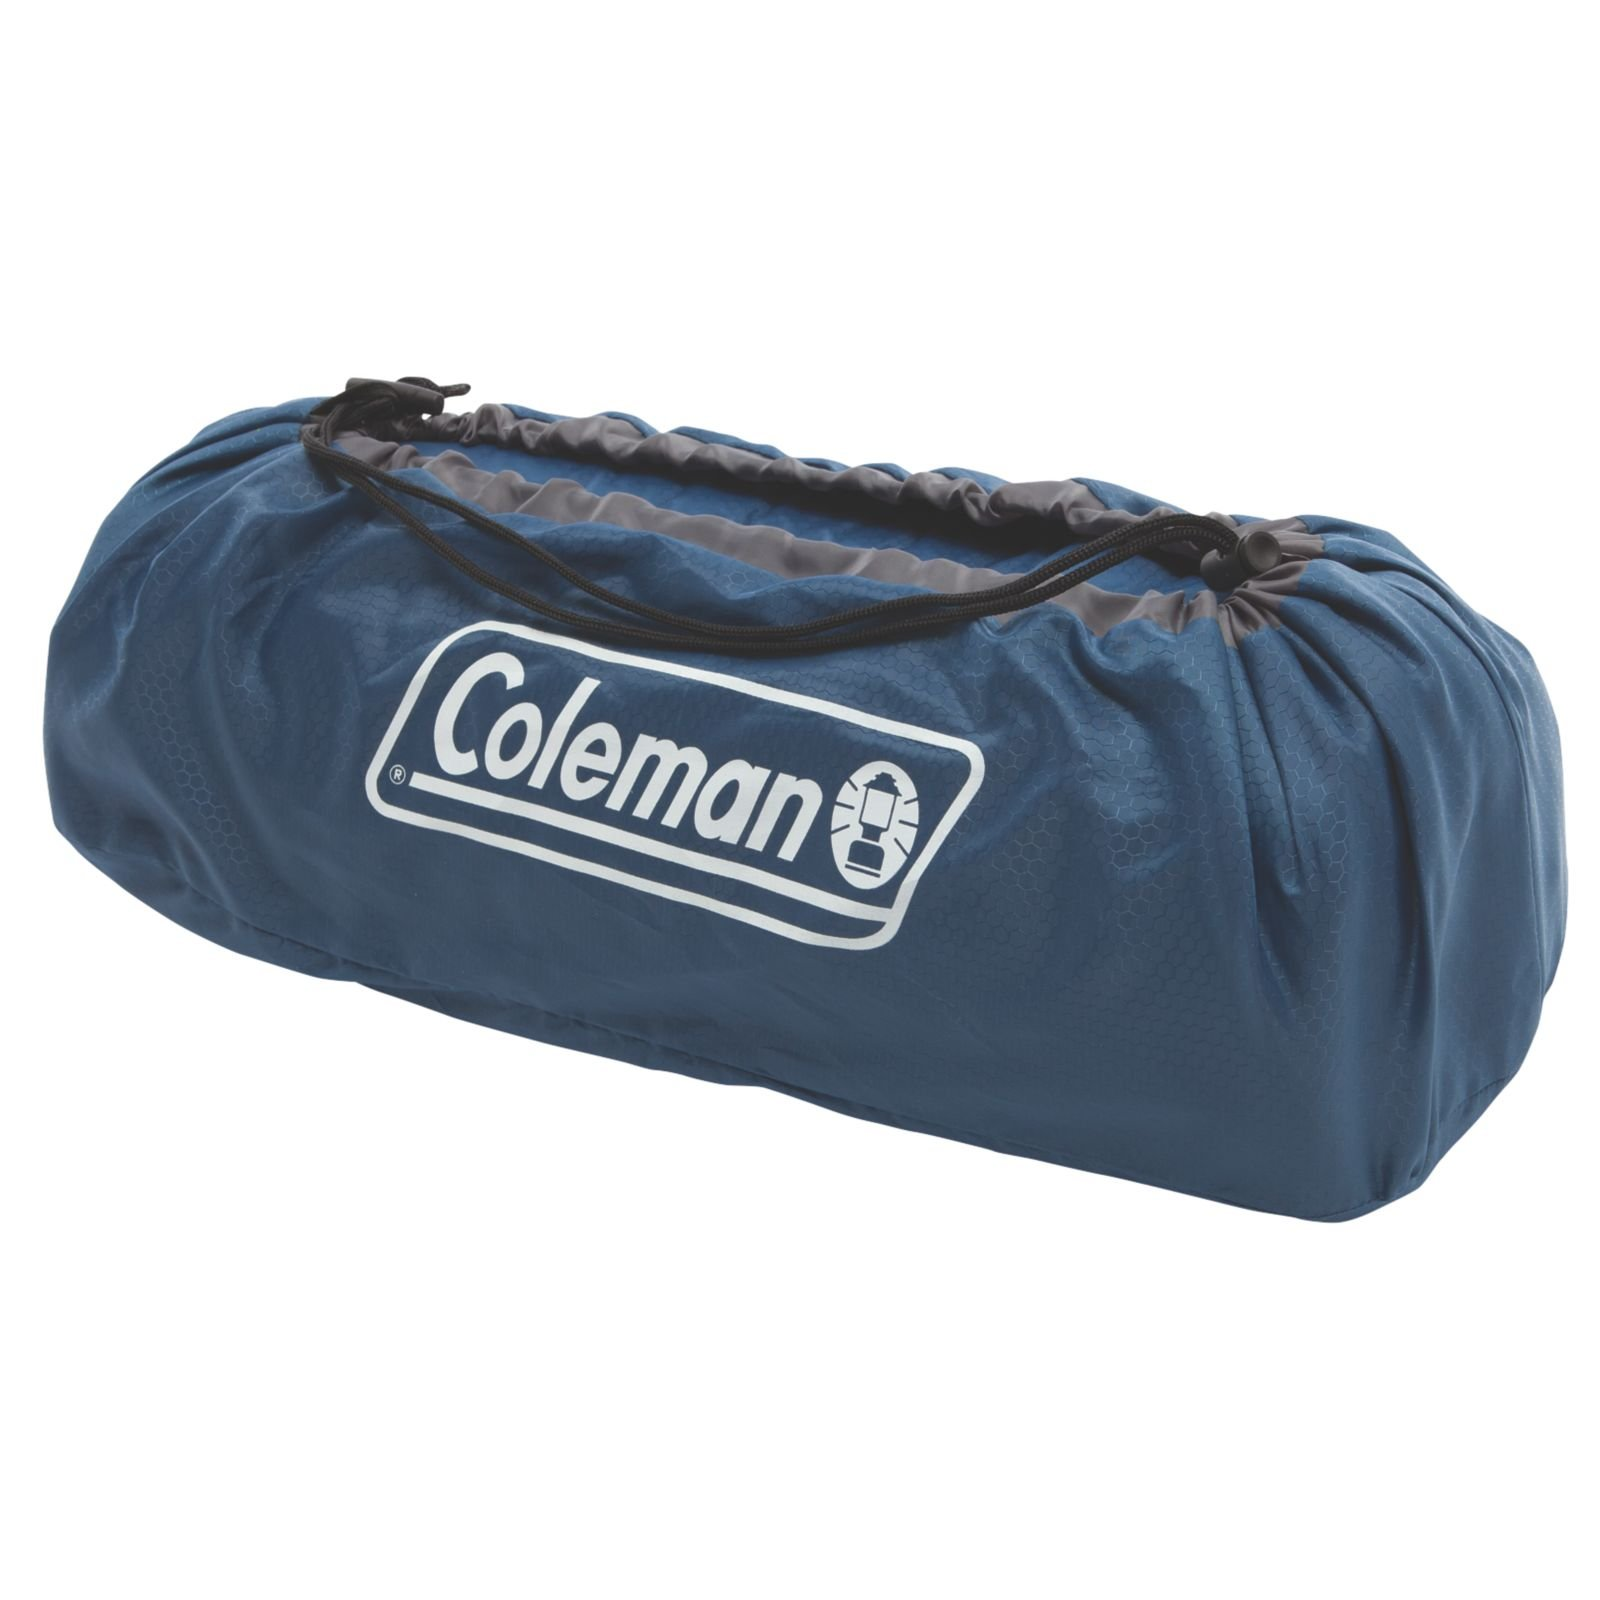 Coleman Silverton Tall Self Inflating Camp Pad, 22 x 76 x 1.5 by Coleman